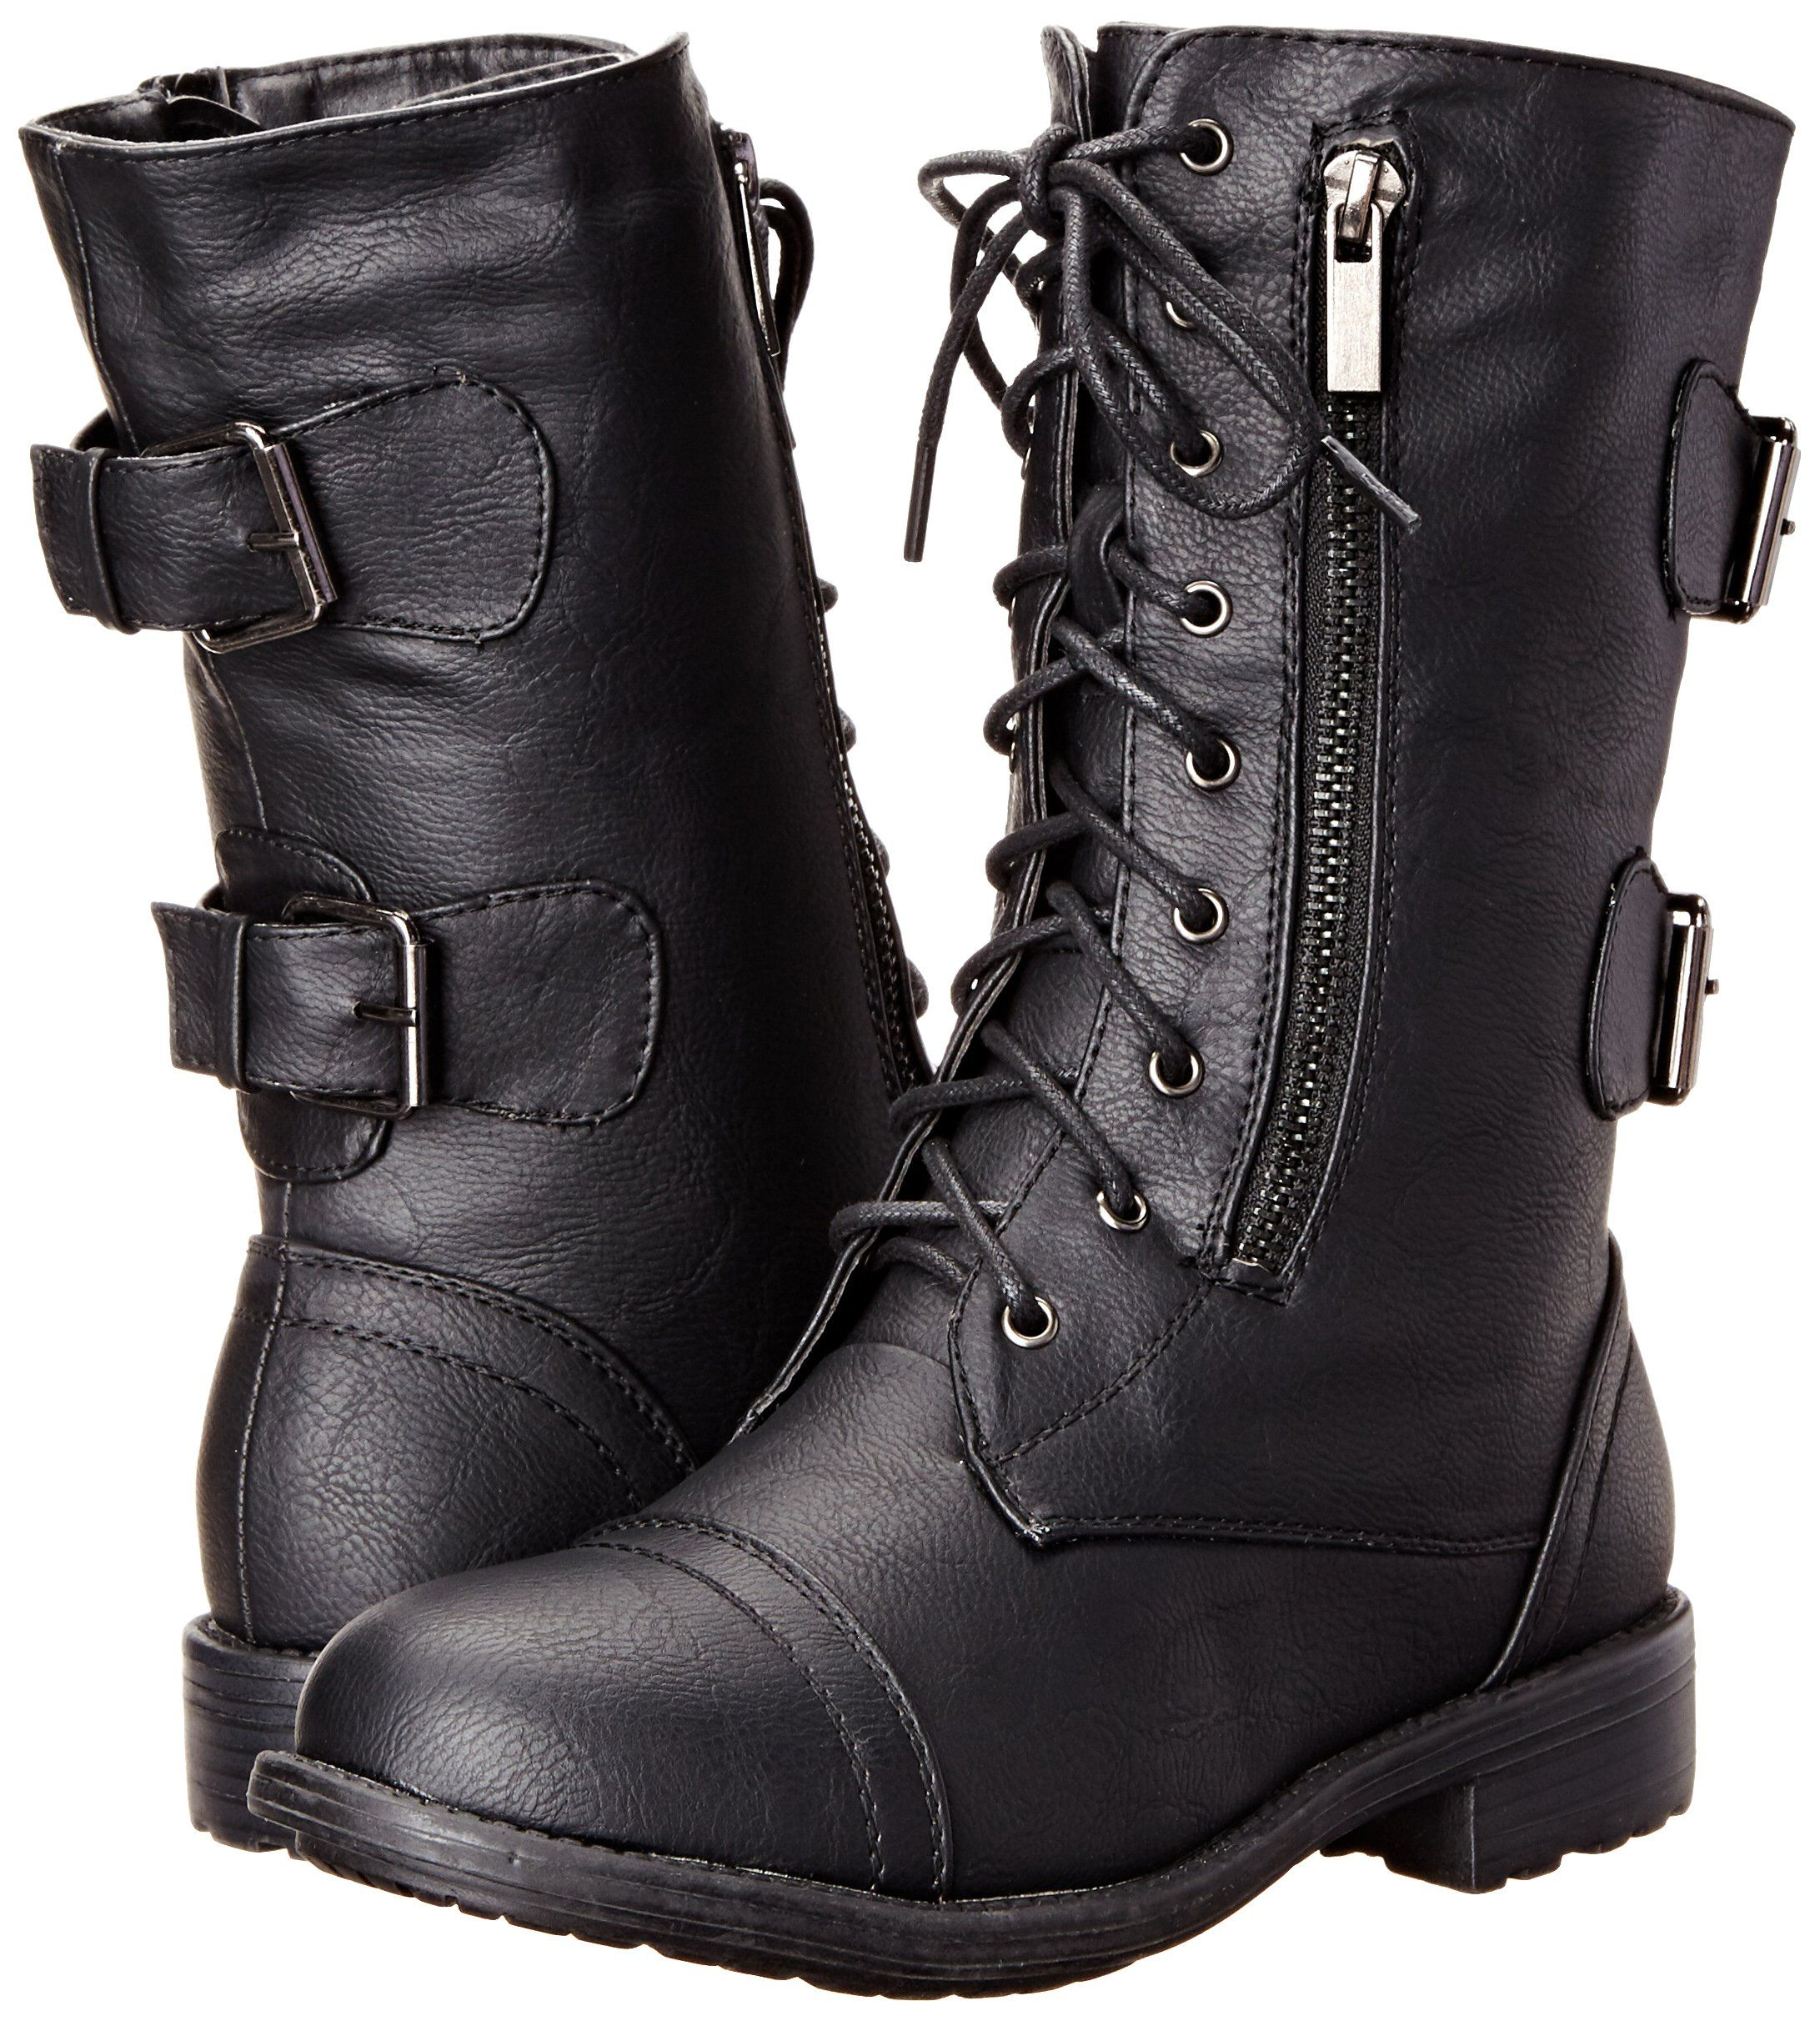 TOP MODA WOMEN/'S PACK-72 MILITARY LACE UP MID CALF COMBAT BOOT COLOR BLACK